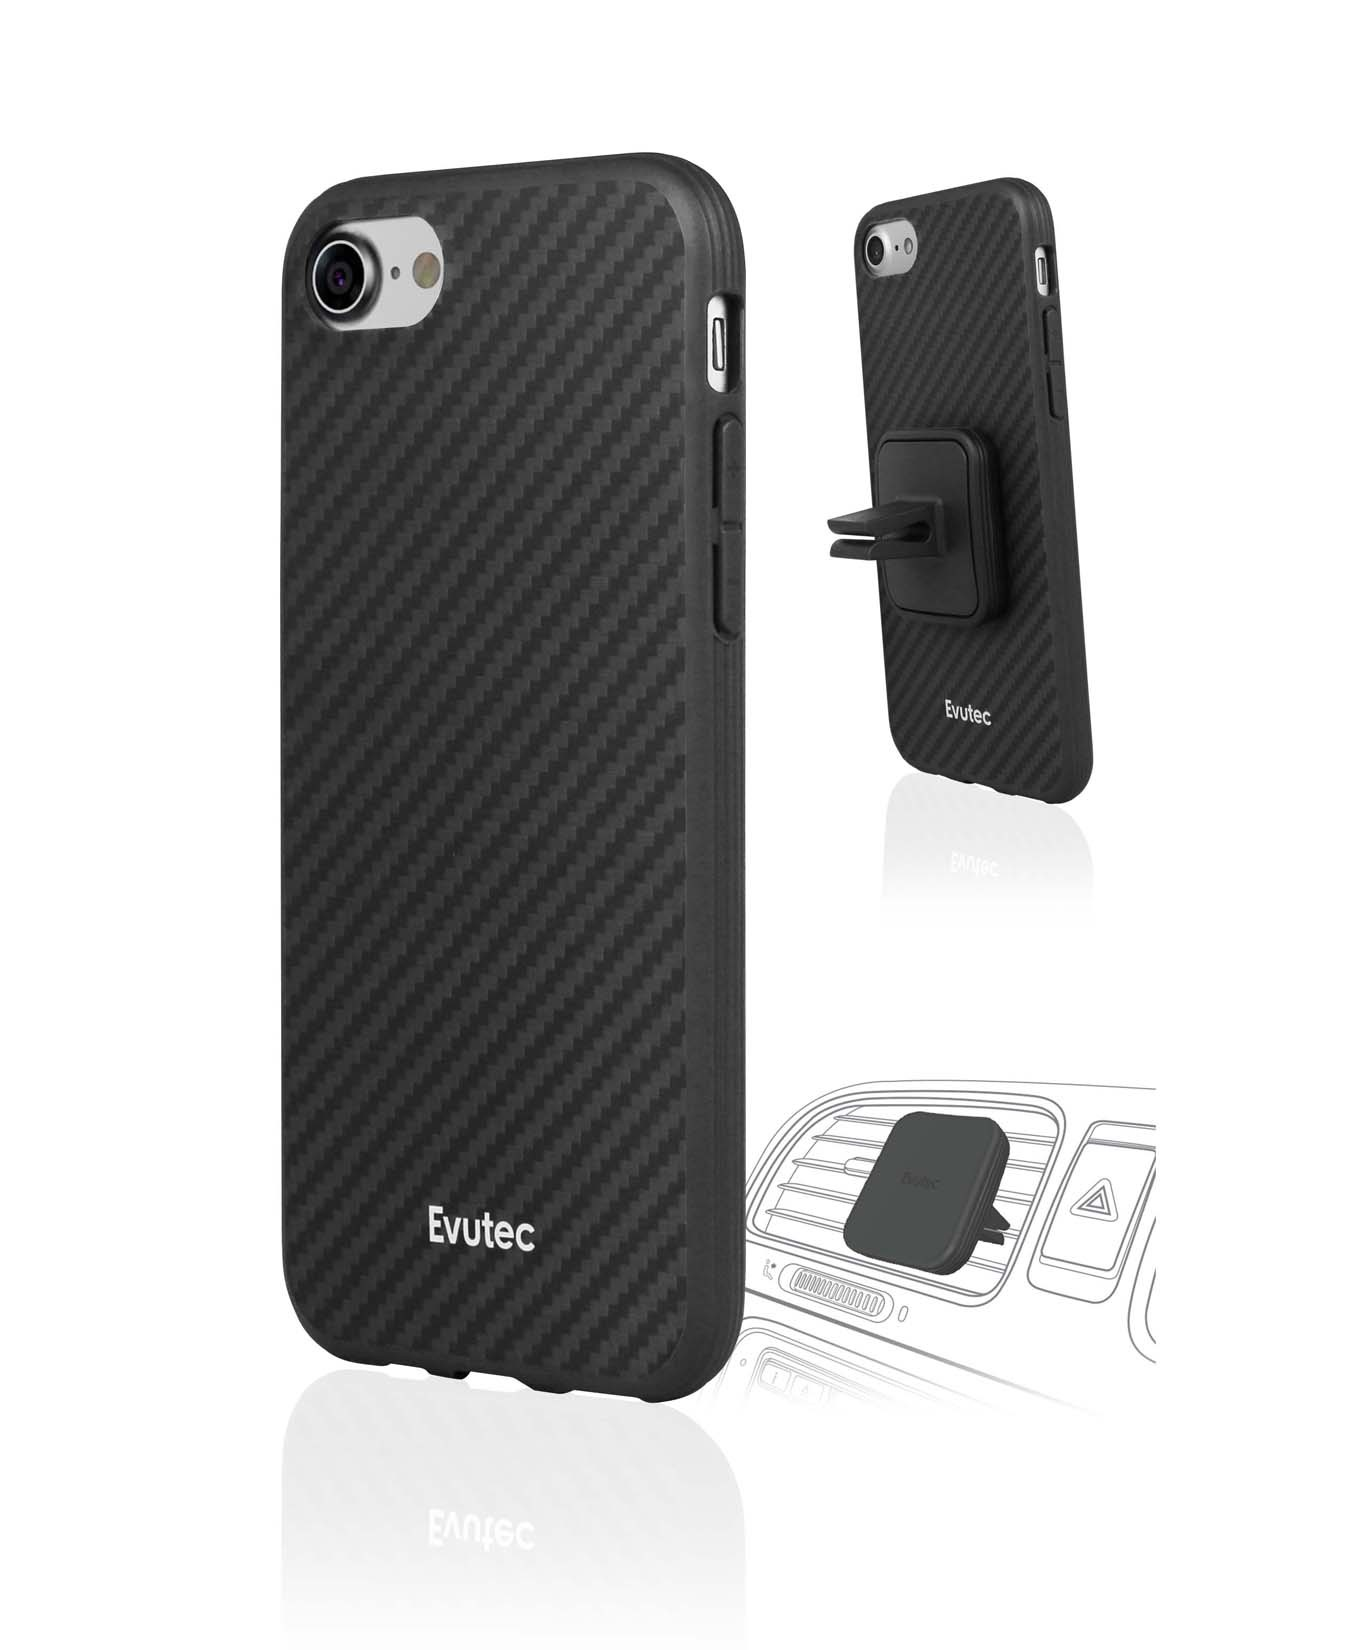 Apple iPhone 8/7/6S/6 Plus Case, Evutec - Karbon AER Scratch Resistant [Reinforced Kevlar Fibers] Hard Case w/ Vent Mount [Black]